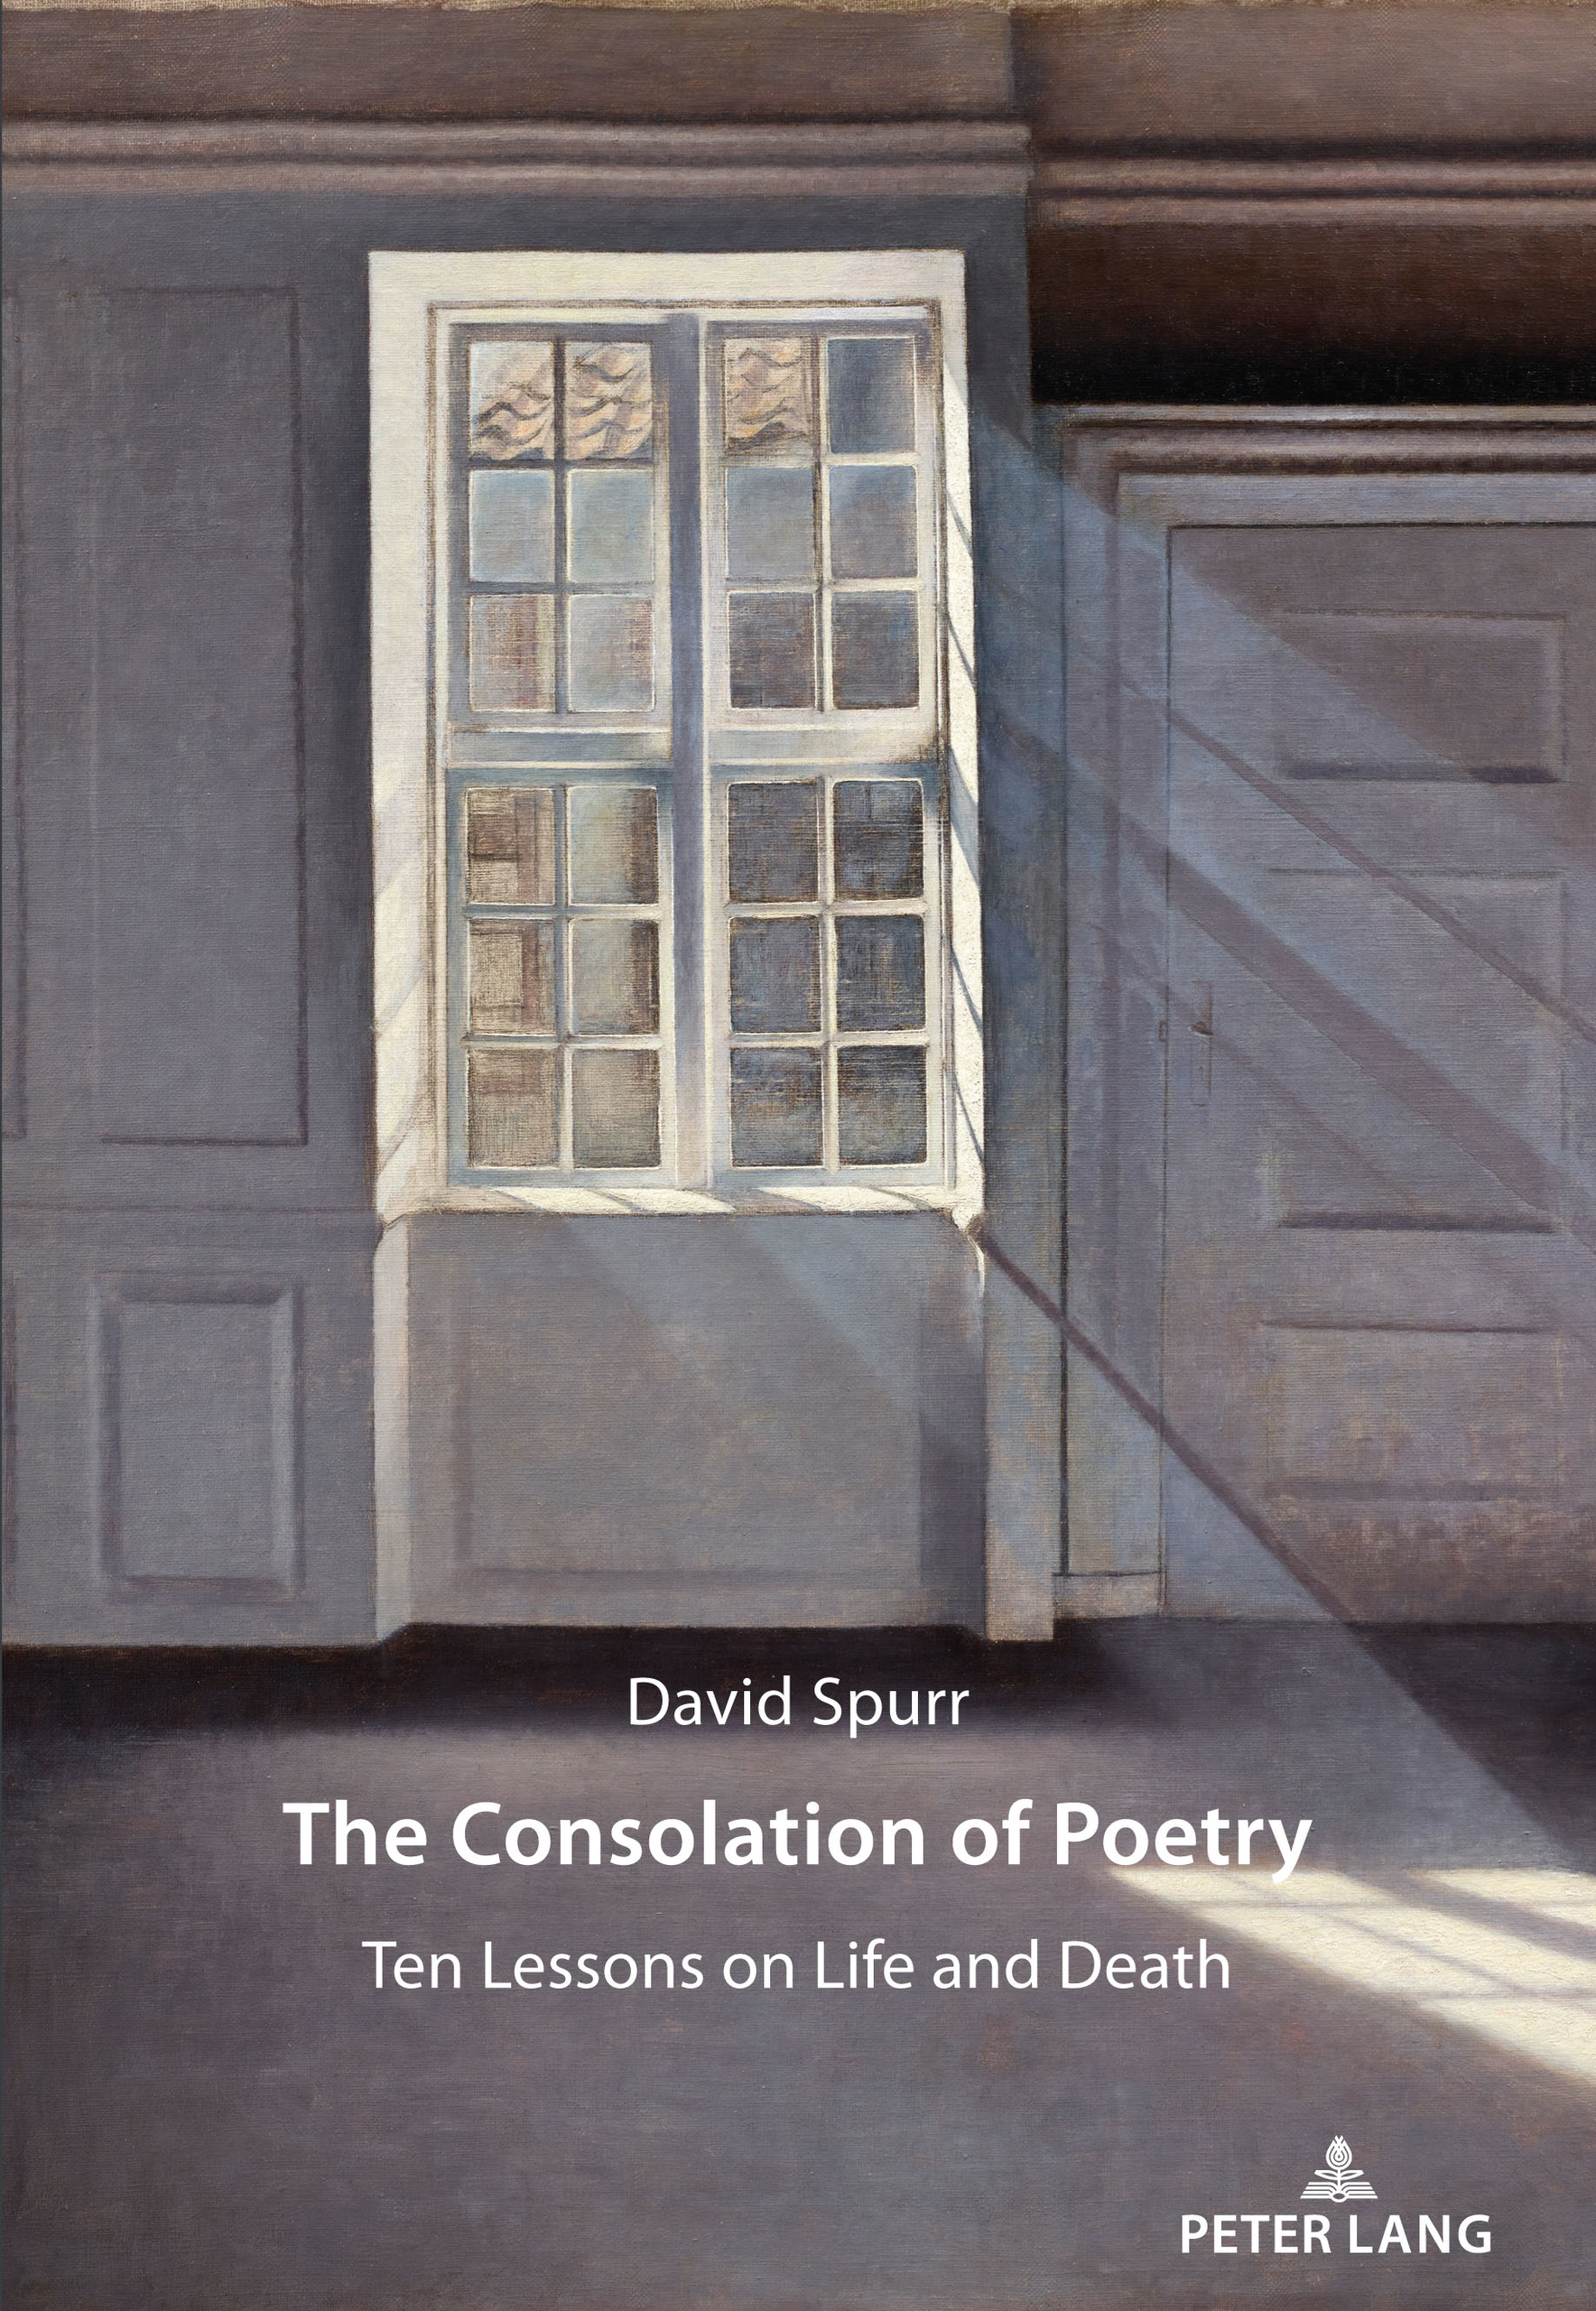 Title: The Consolation of Poetry